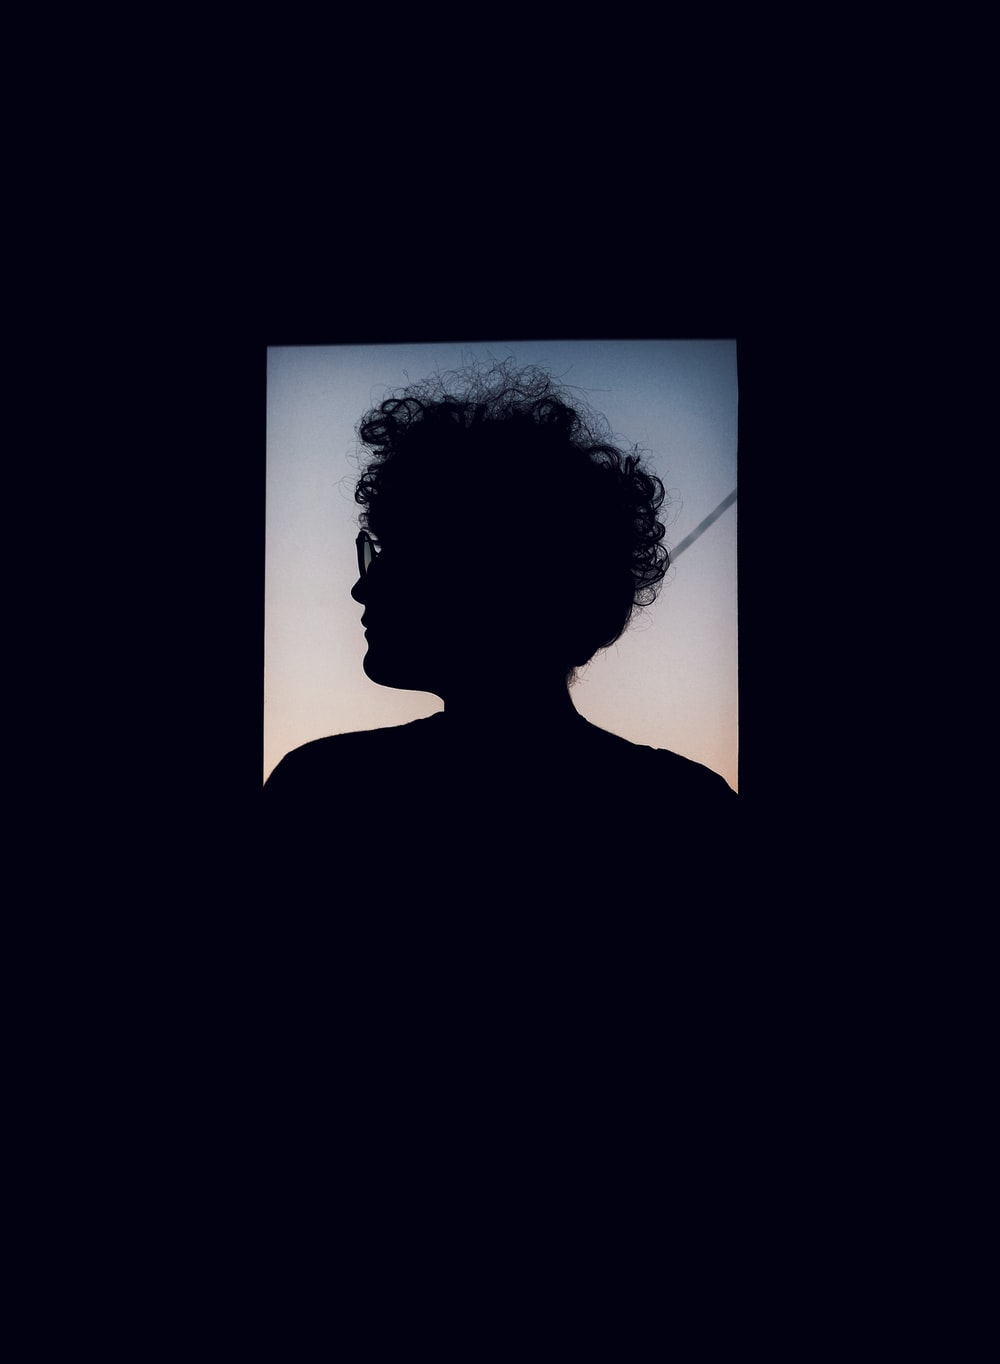 silhouette of person with curly hair and eyeglasses